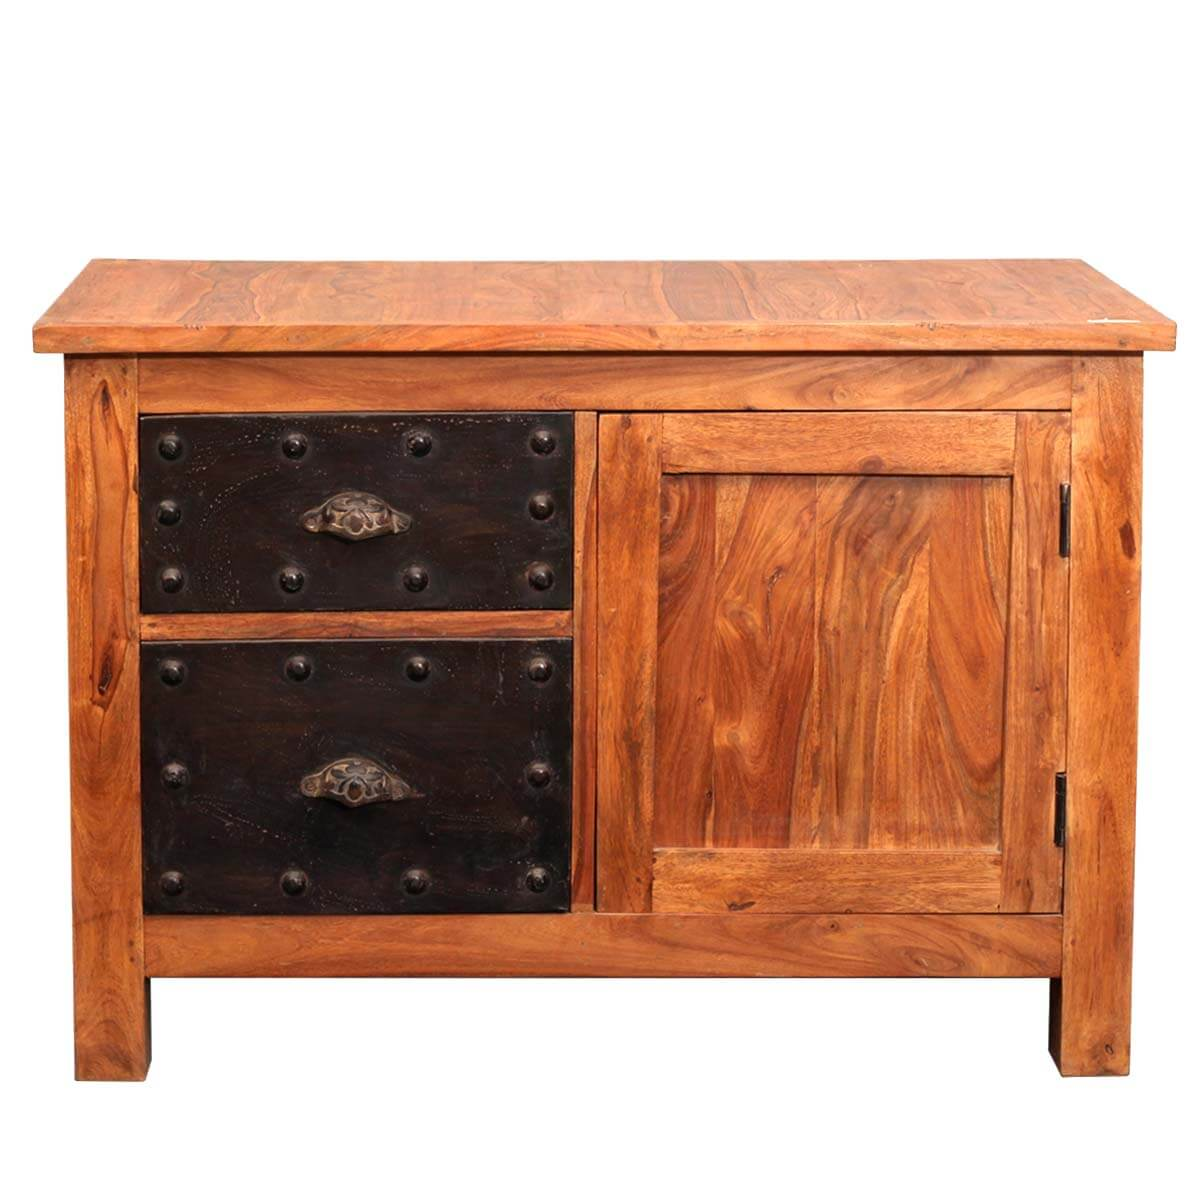 Mission Iron Reclaimed Wood Storage Buffet Cabinet Furniture